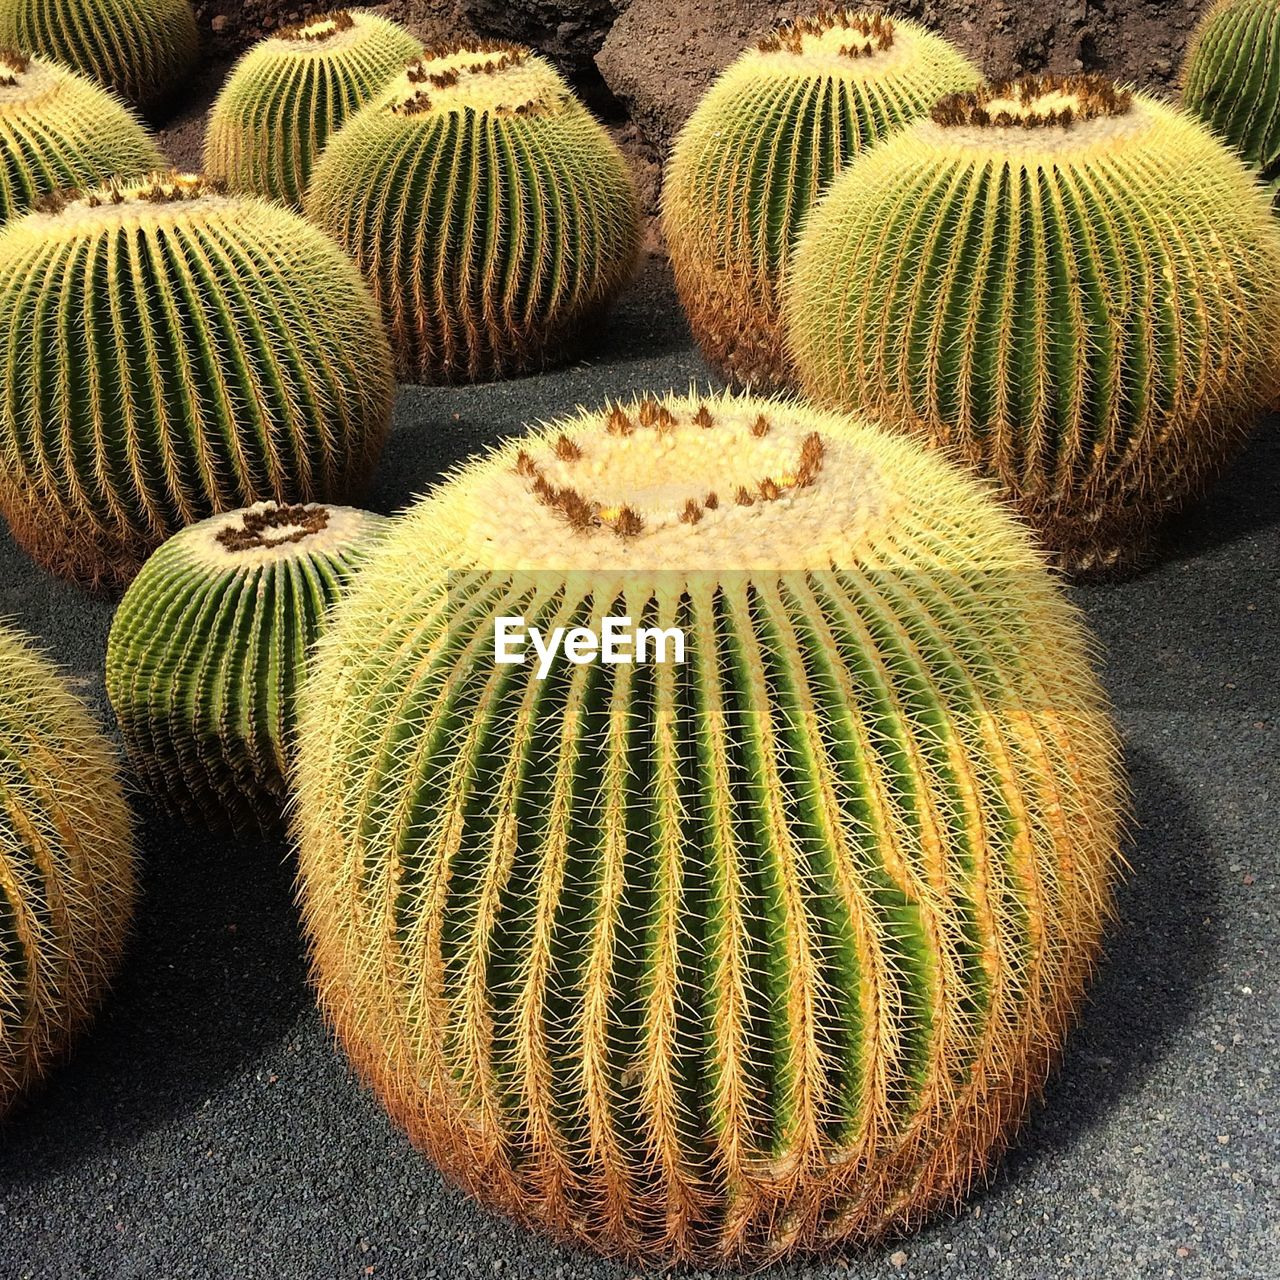 Close-up of barrel cactuses growing on field